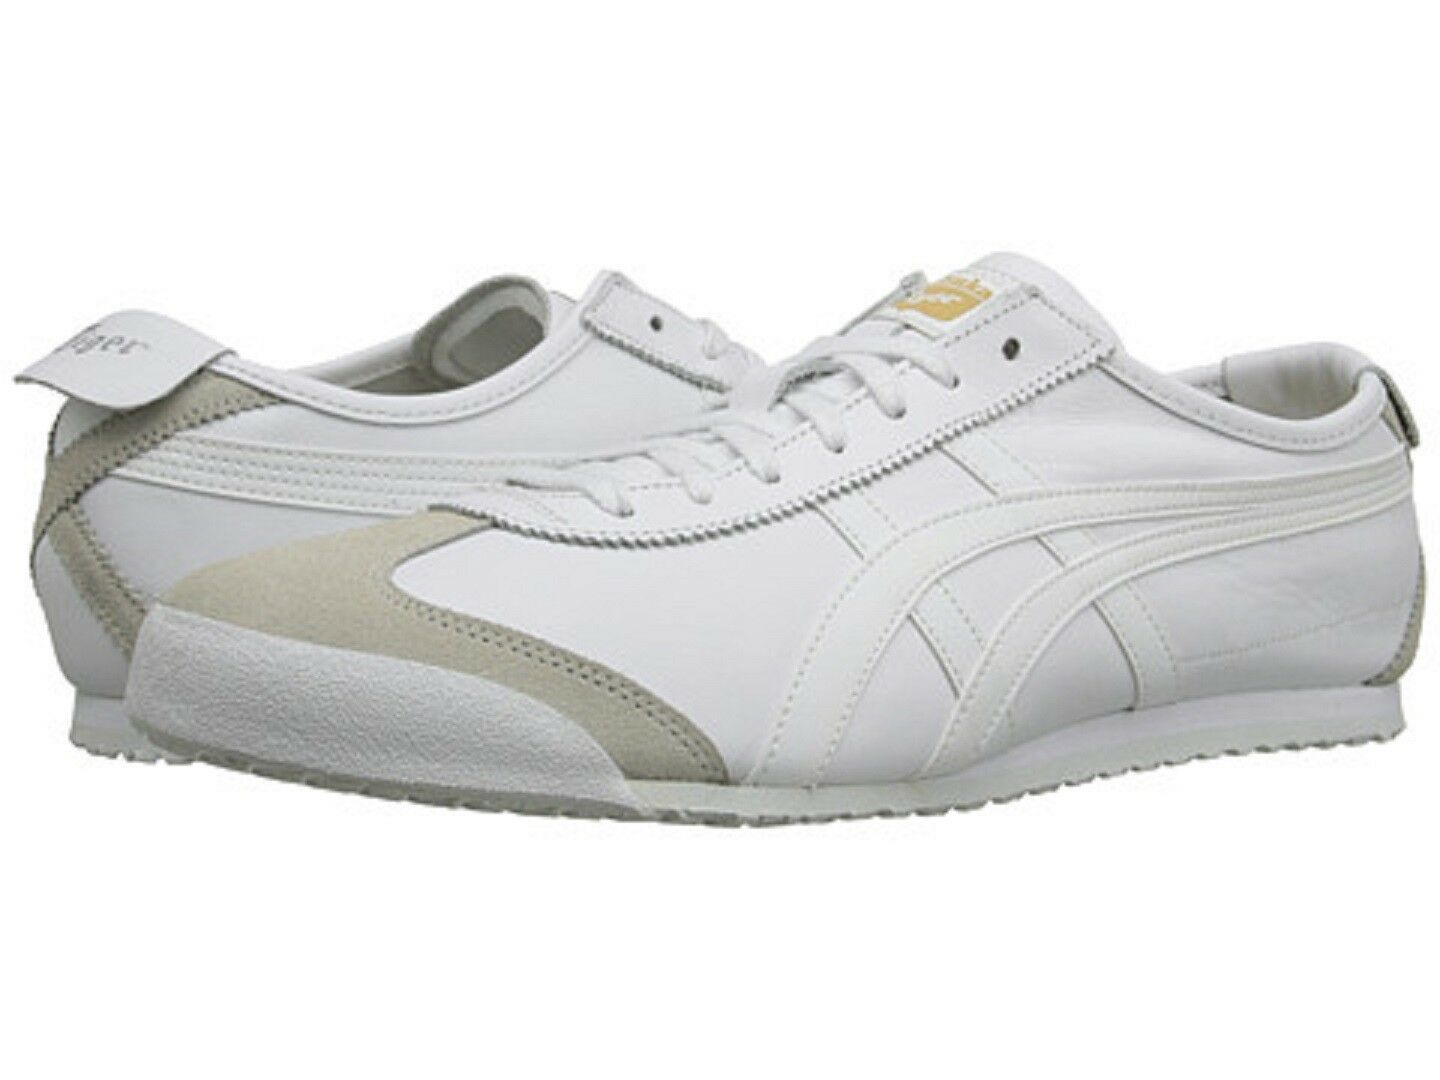 ONITSUKA TIGER DL408.0101 MEXICO 66 Mn's (M) bianca Leather Lifestyle sautope